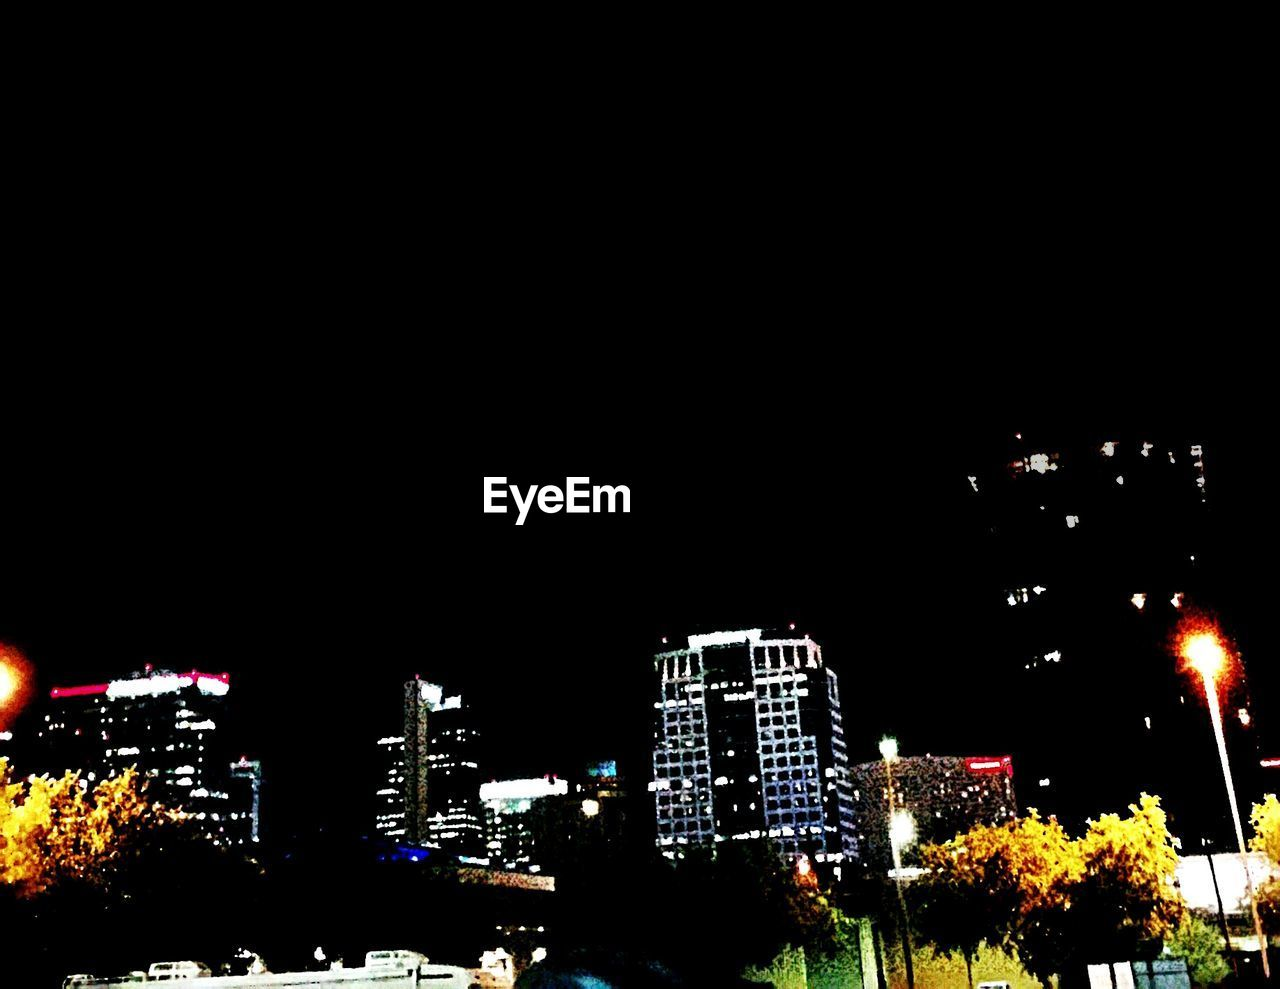 night, illuminated, building exterior, copy space, architecture, no people, built structure, skyscraper, low angle view, outdoors, city, tree, clear sky, growth, cityscape, nature, sky